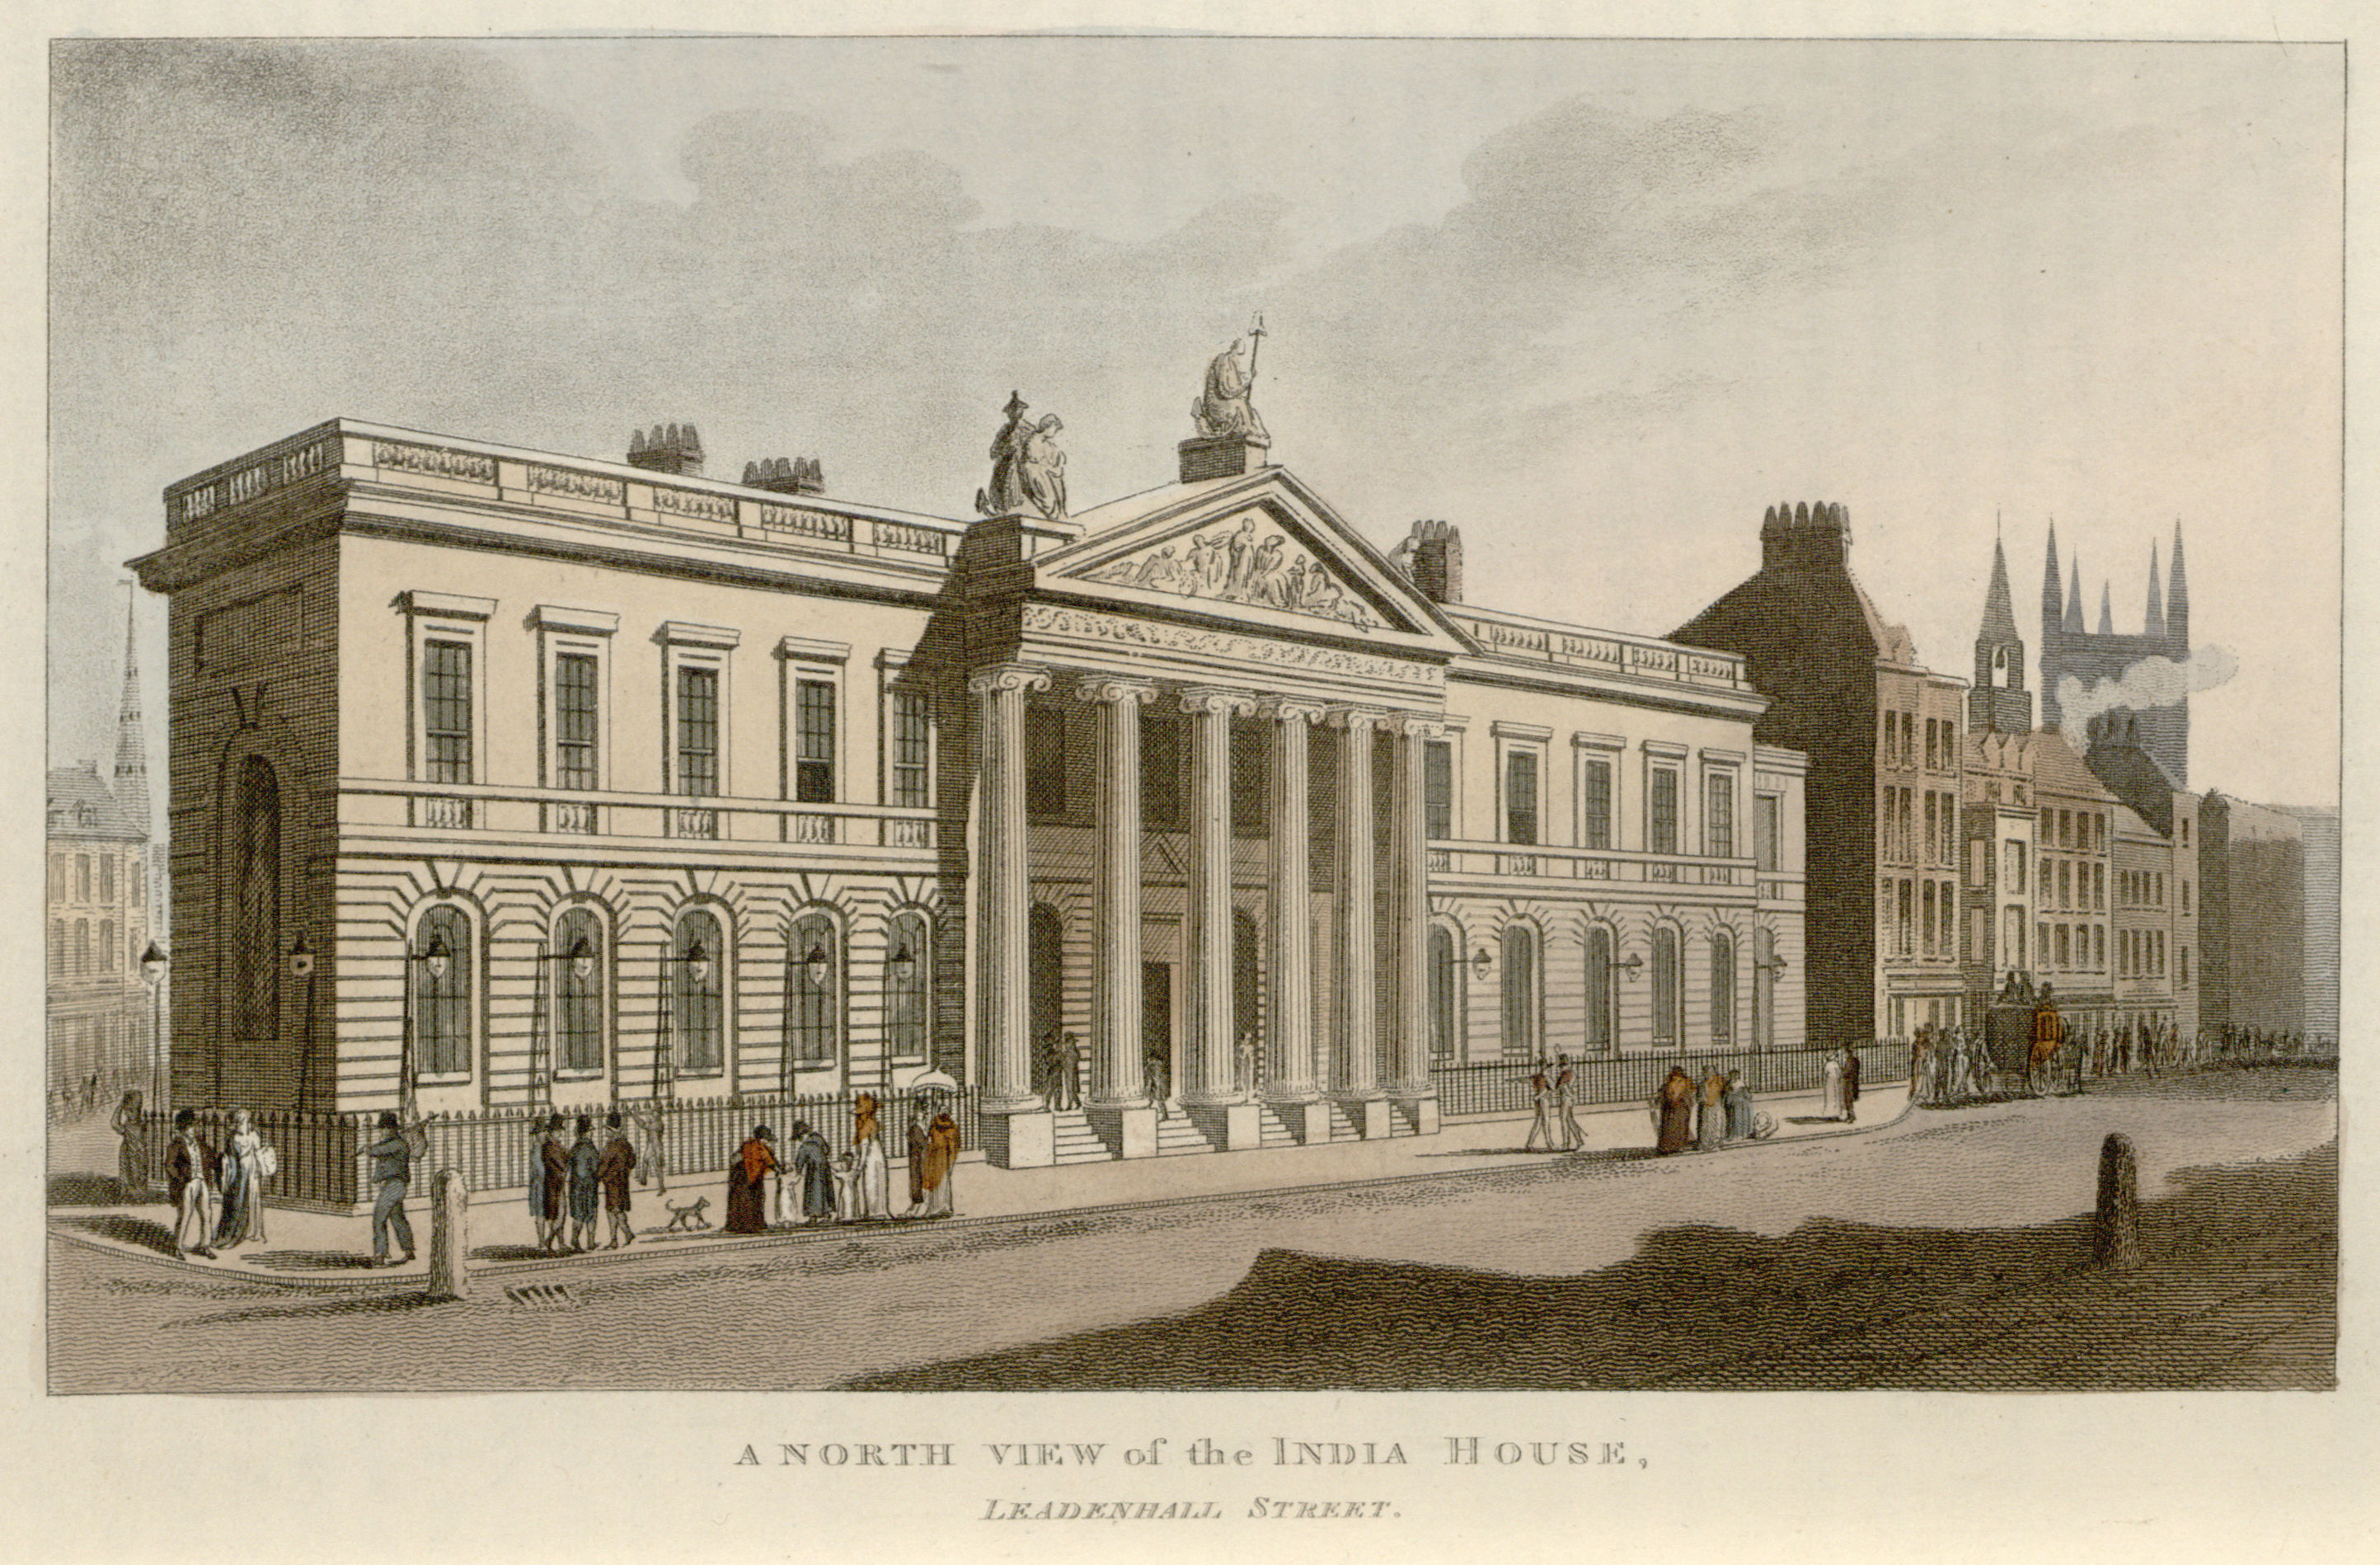 56 - Papworth - A North View of the India House, Leadenhall Street